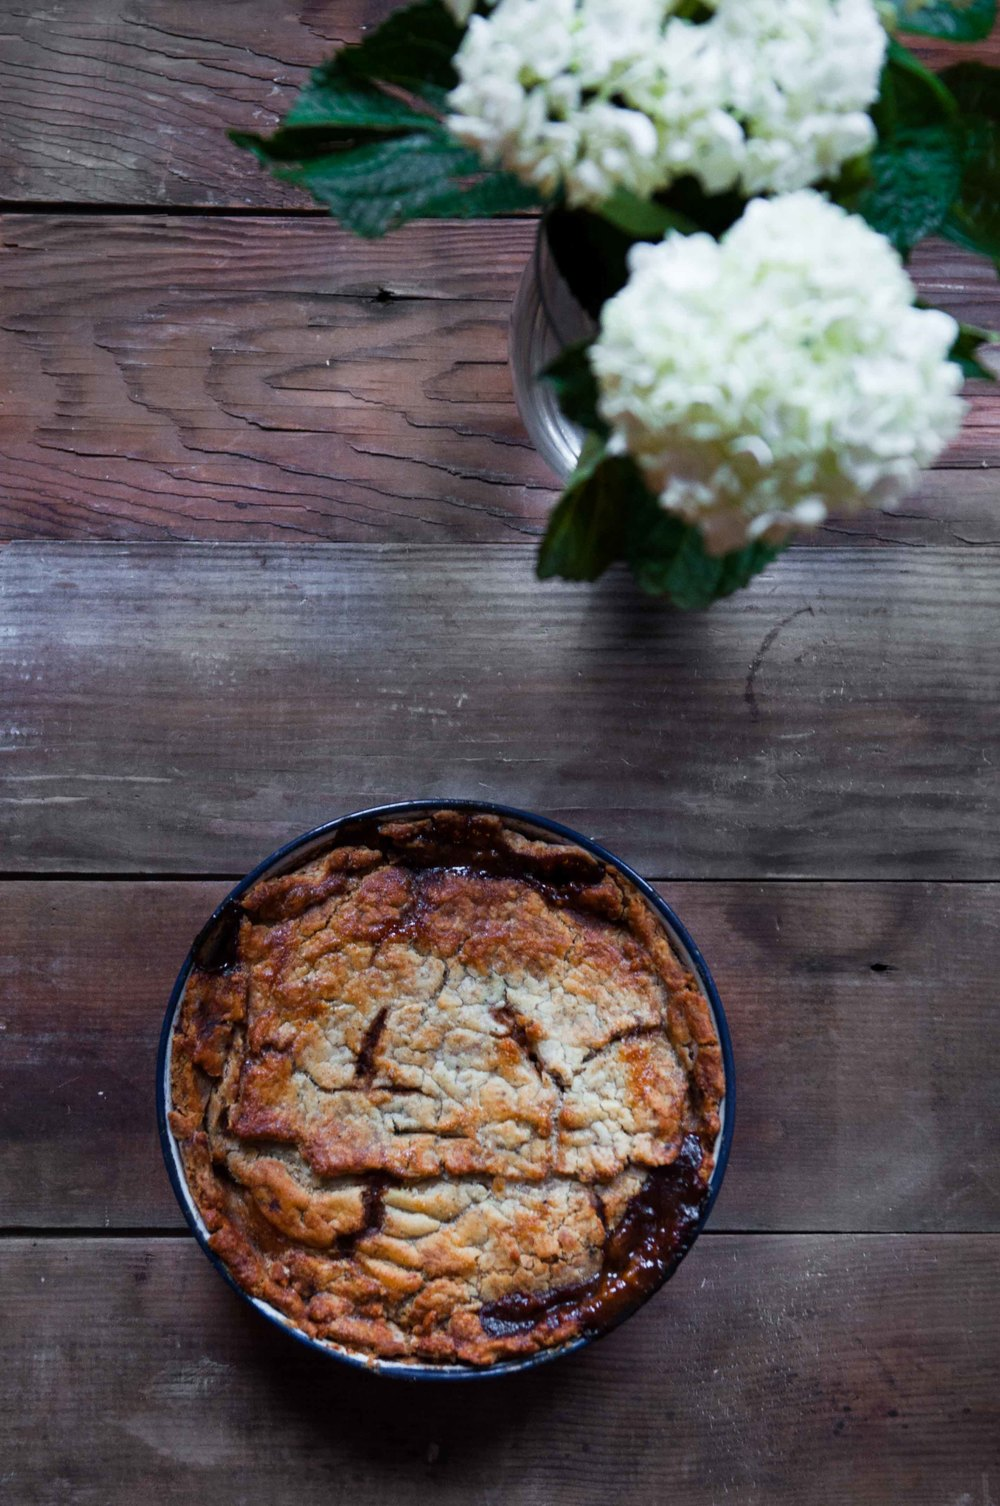 Gluten Free Curried Irish Beef Pot Pie with a Tallow Crust made with gluten free flour blend